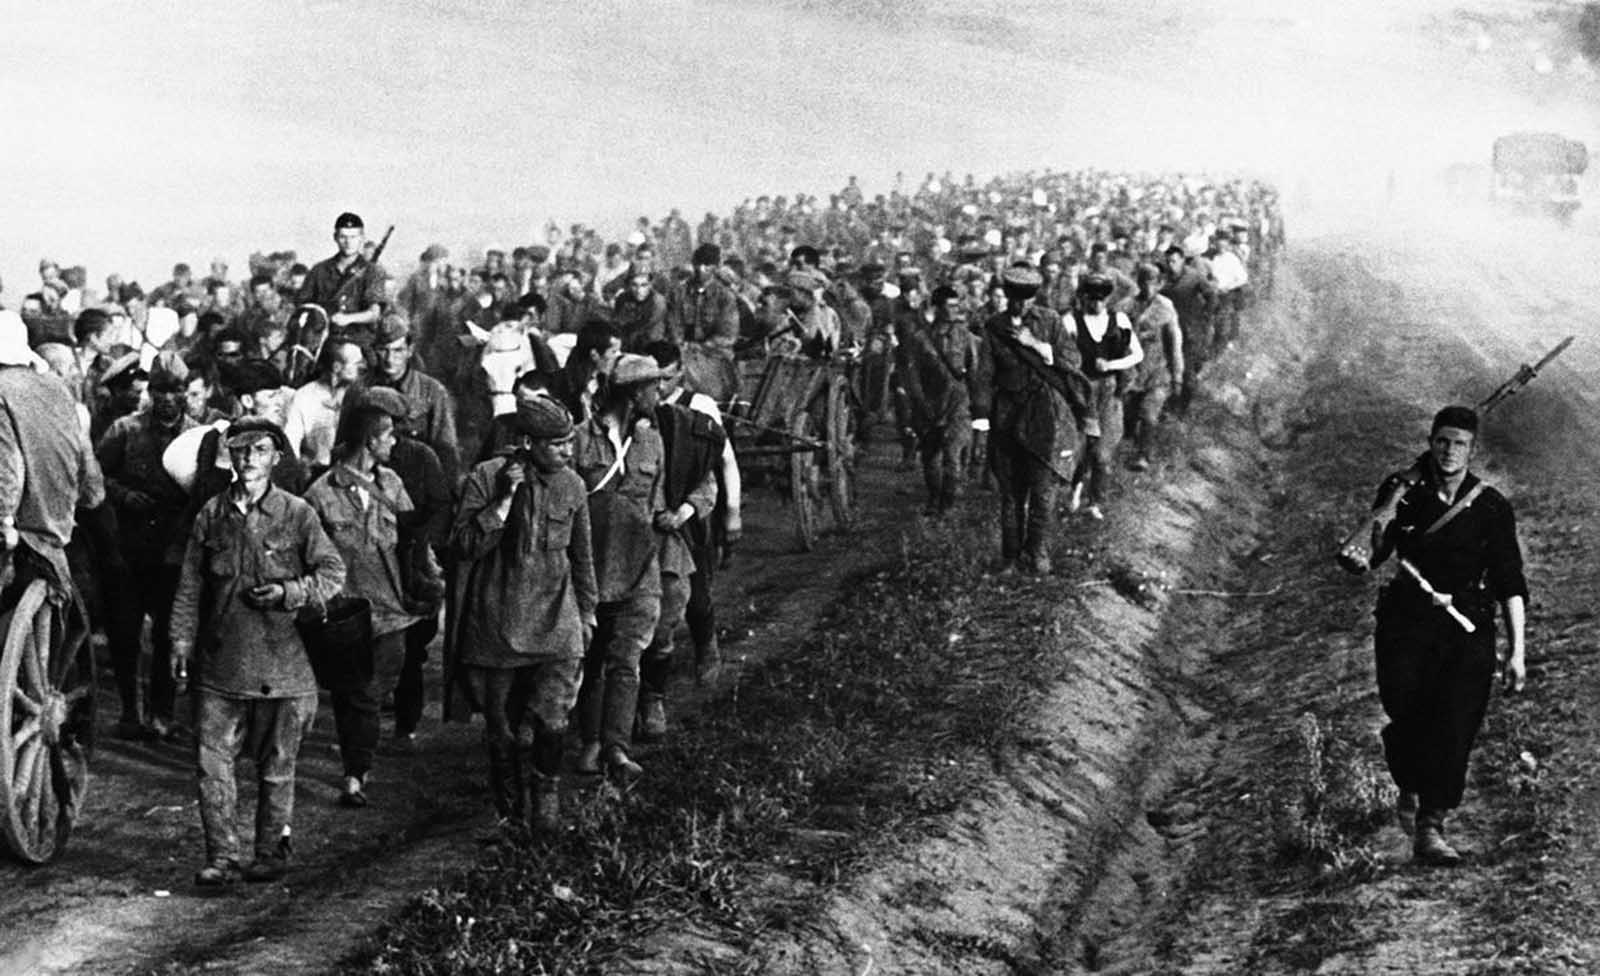 An column of Russian prisoners of war taken during recent fighting in Ukraine, on their way to a Nazi prison camp on September 3, 1941.